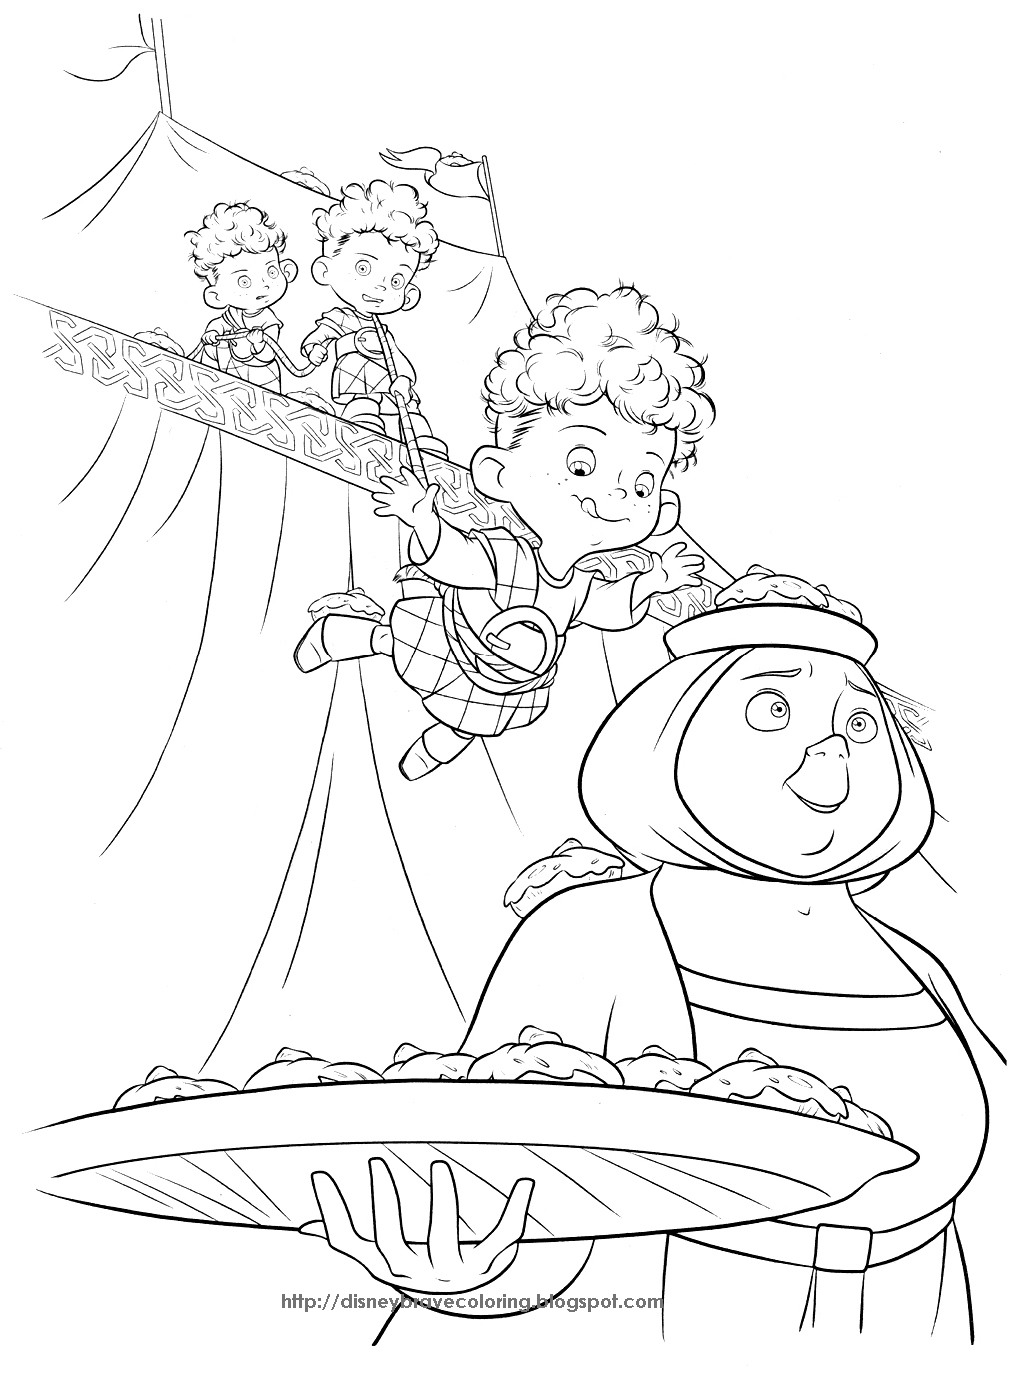 Disney Coloring Pages Brave : Princess coloring pages